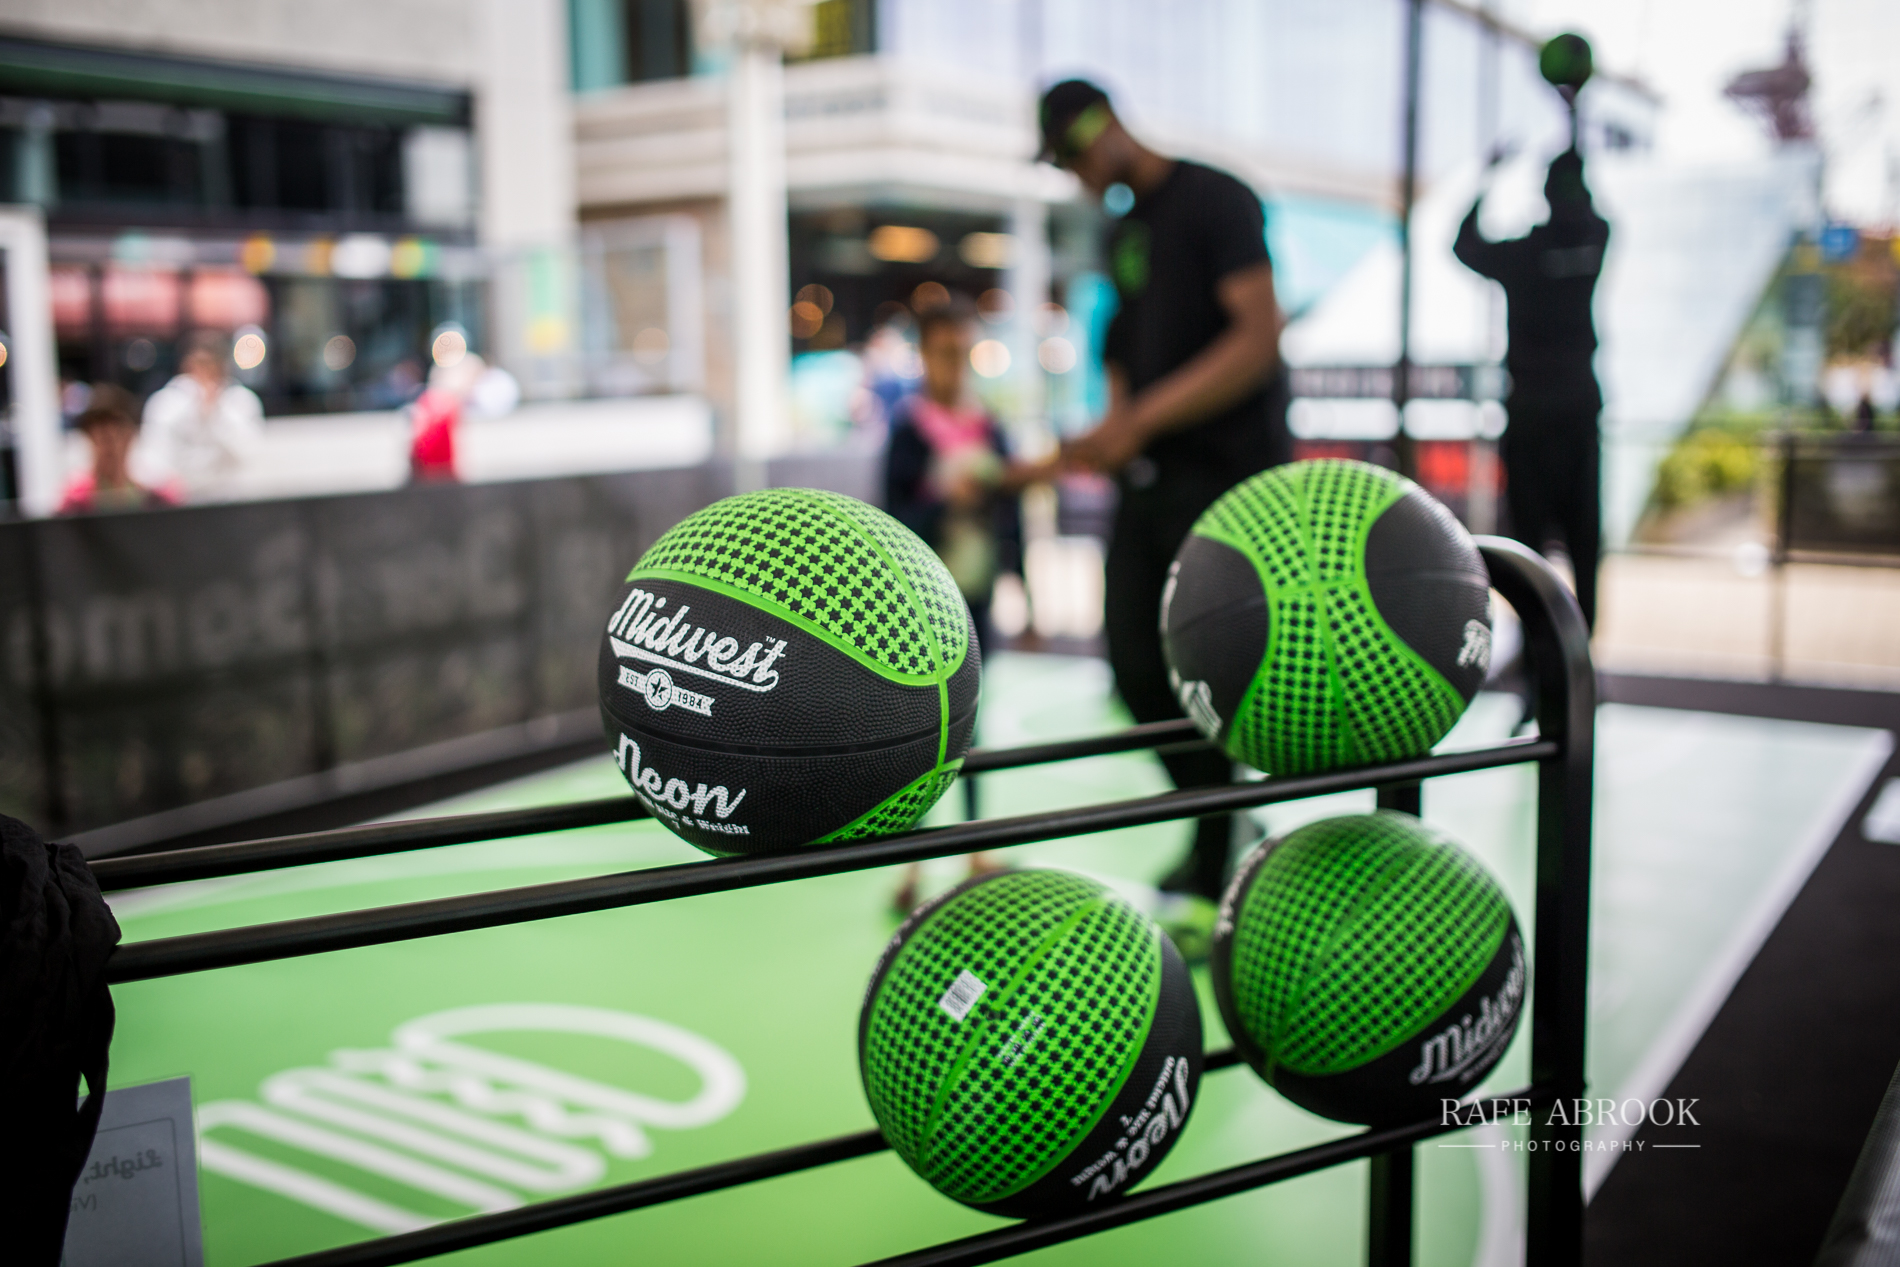 shake shack uk westfield stratford london experiential basketball-1019.jpg